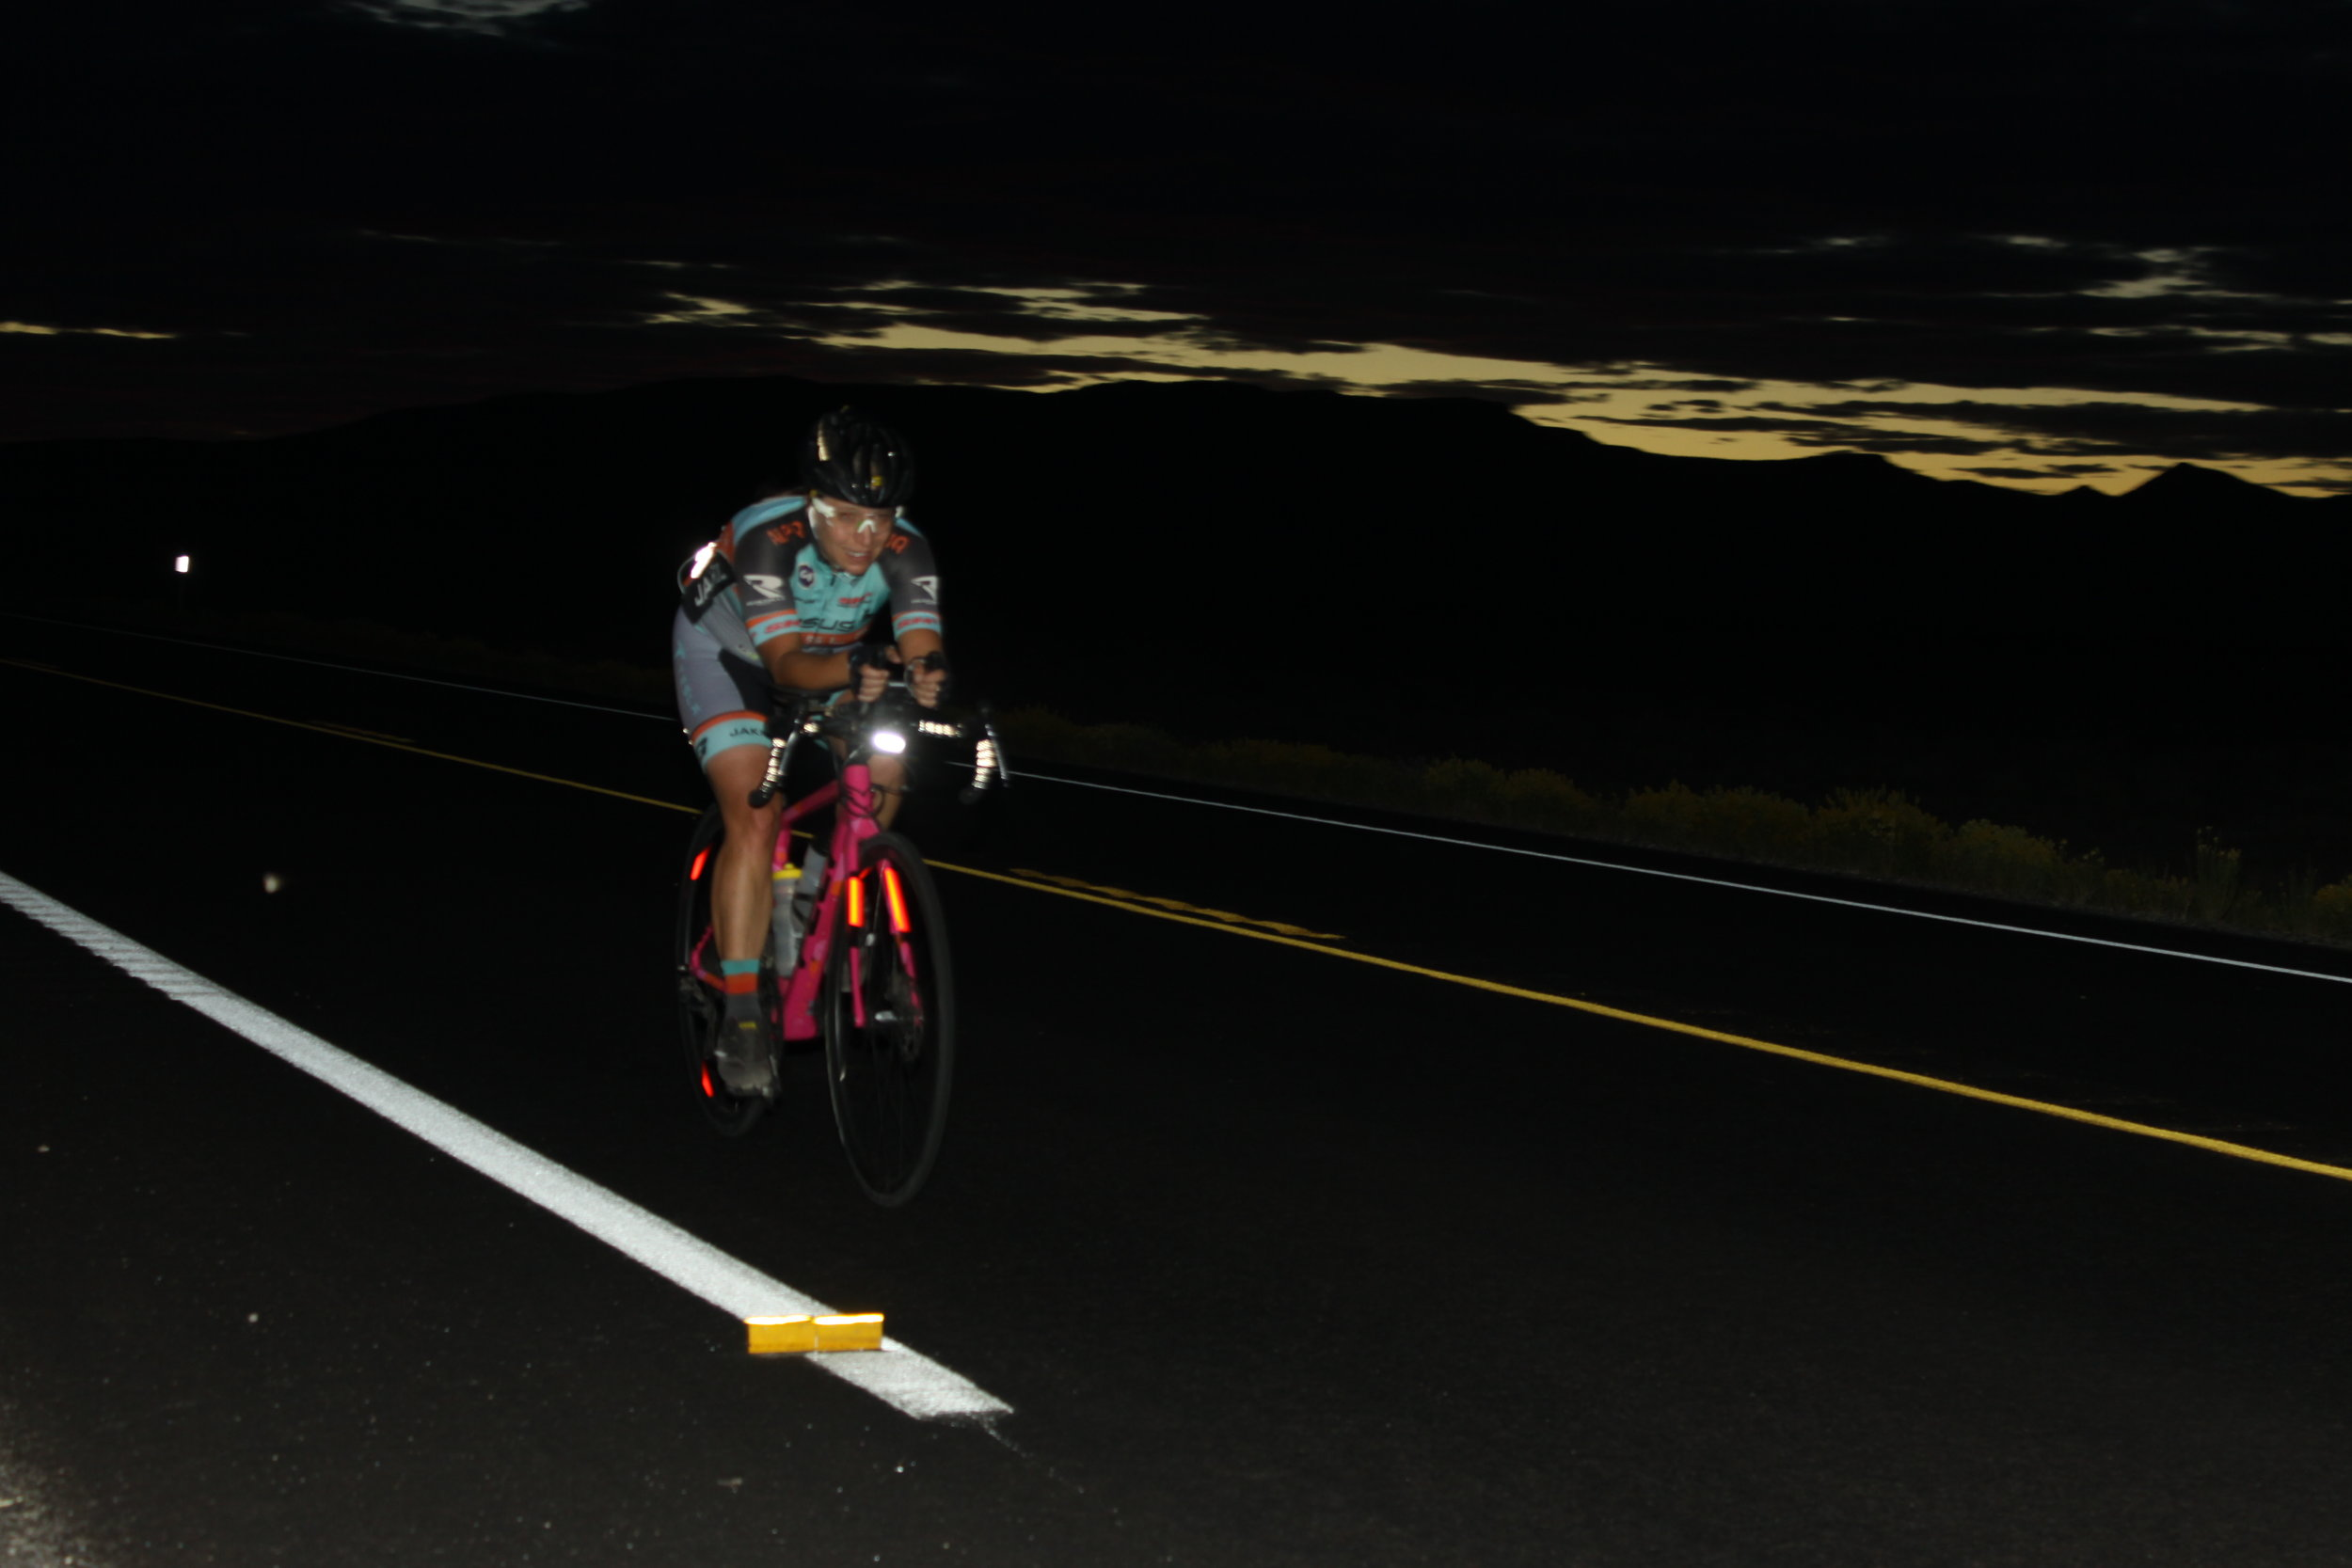 The Nite Rider lights mounted on our bikes during the stages of the race that were in the night time hours were absolutely amazing. The road in front of me was brightly lit, and the light more than lasted for the duration of even our longest night-time stage.